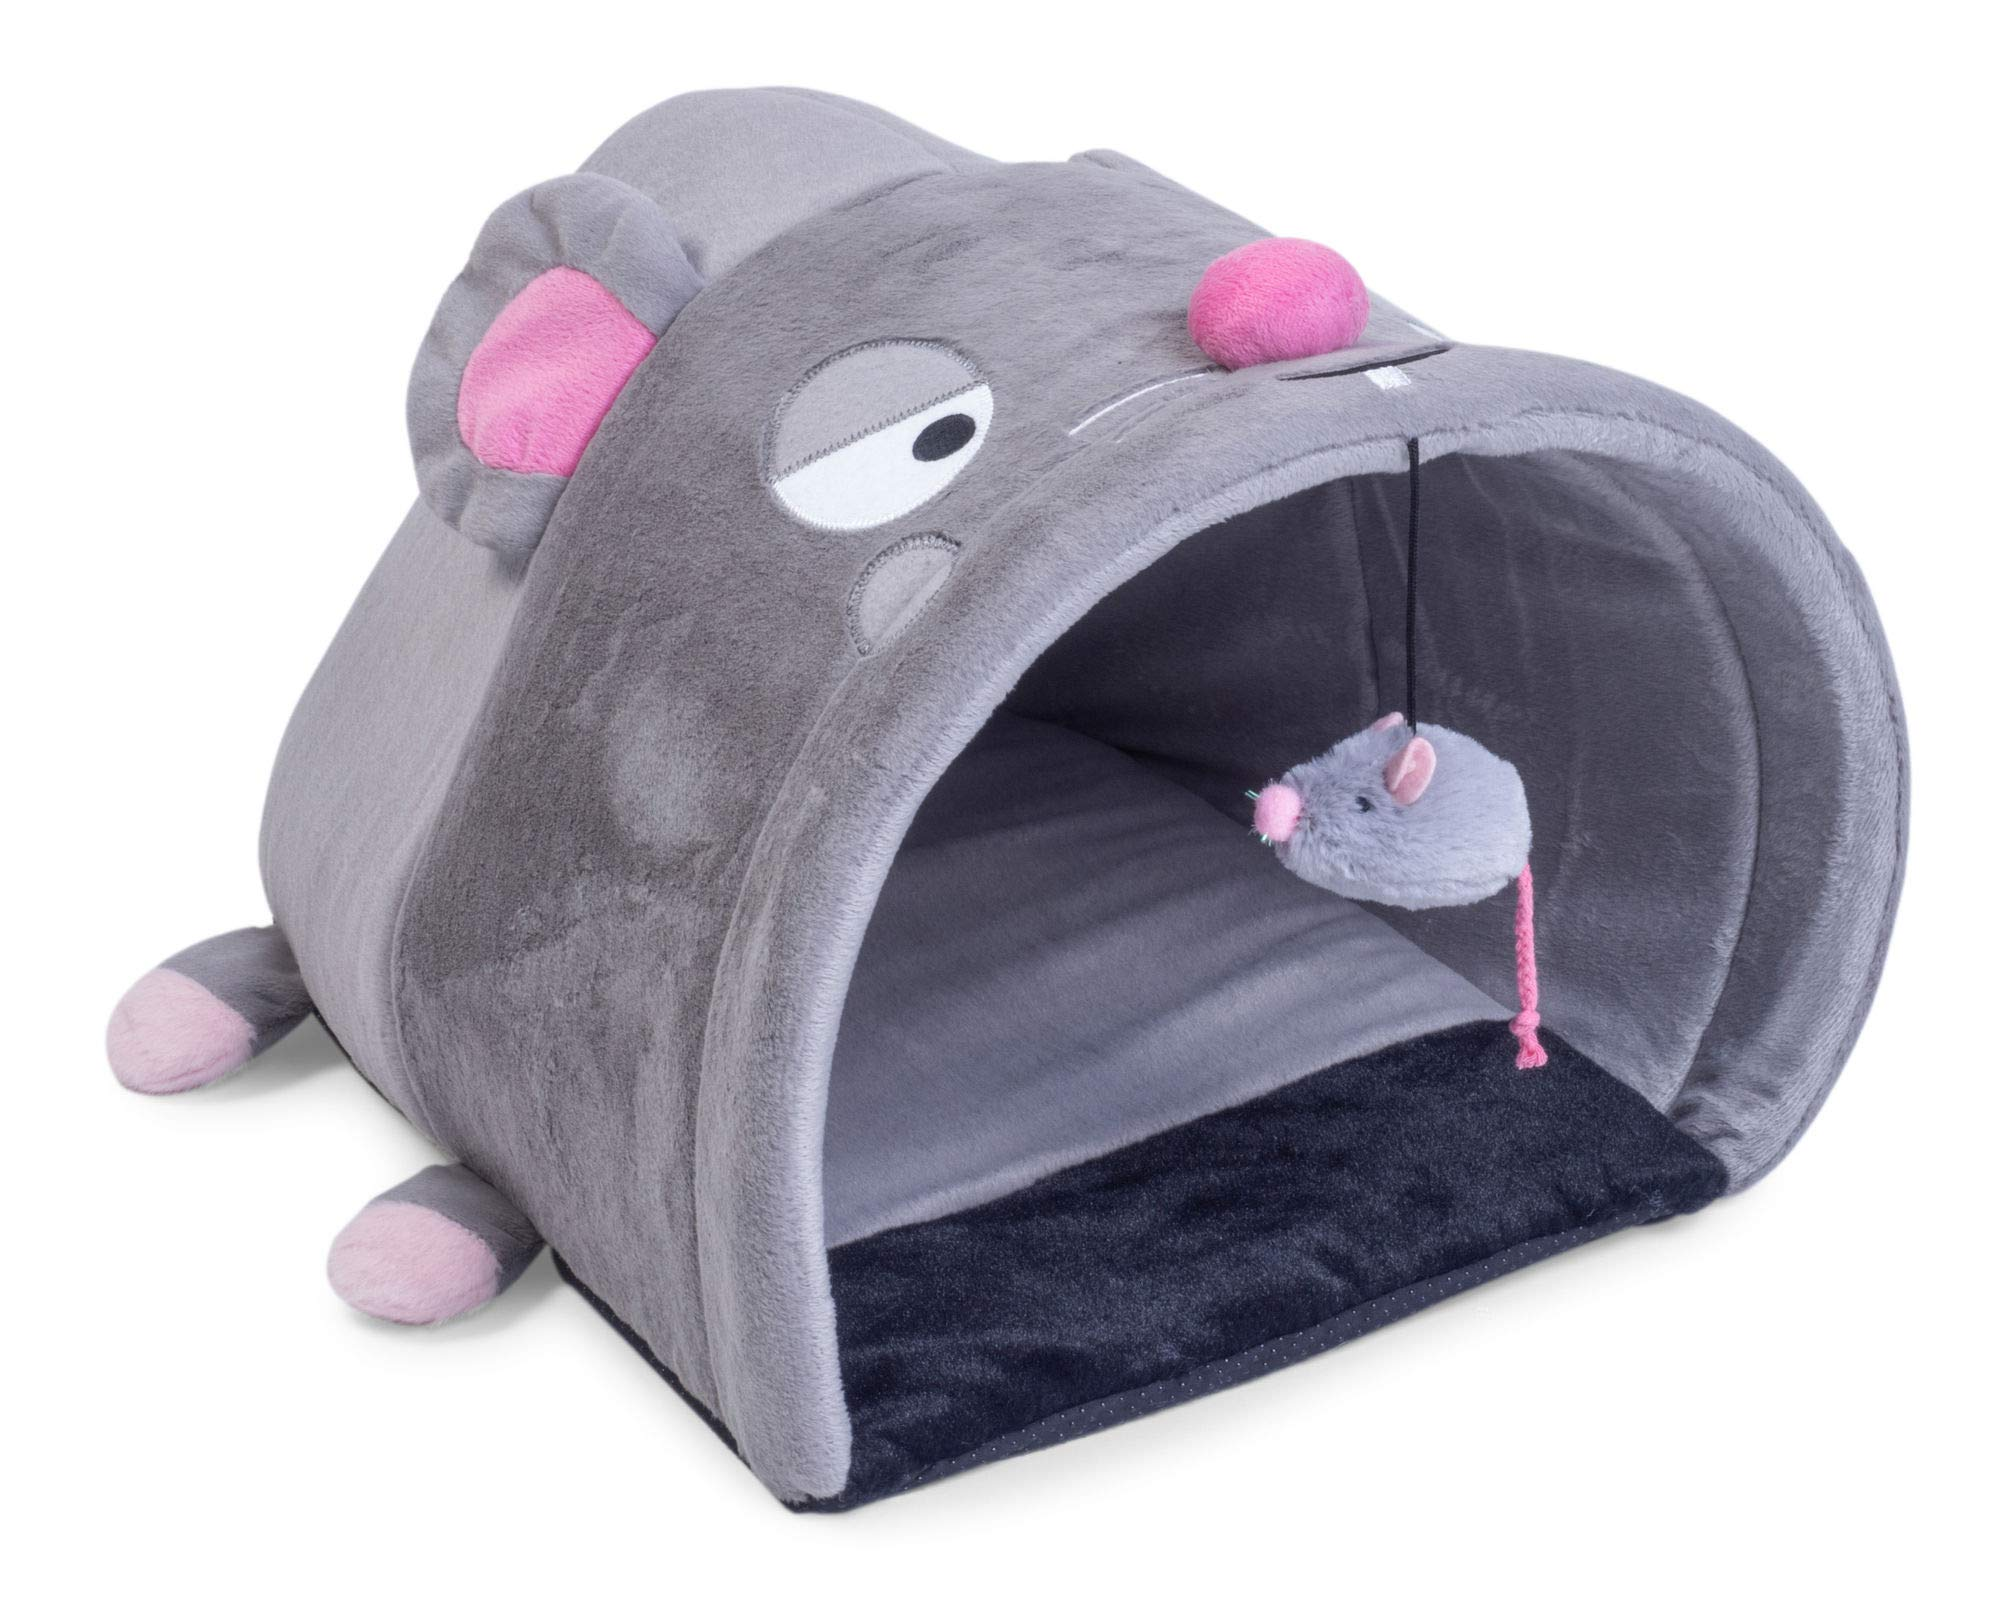 Petface Angry Mouse Cat Hideaway by Petface (Image #3)